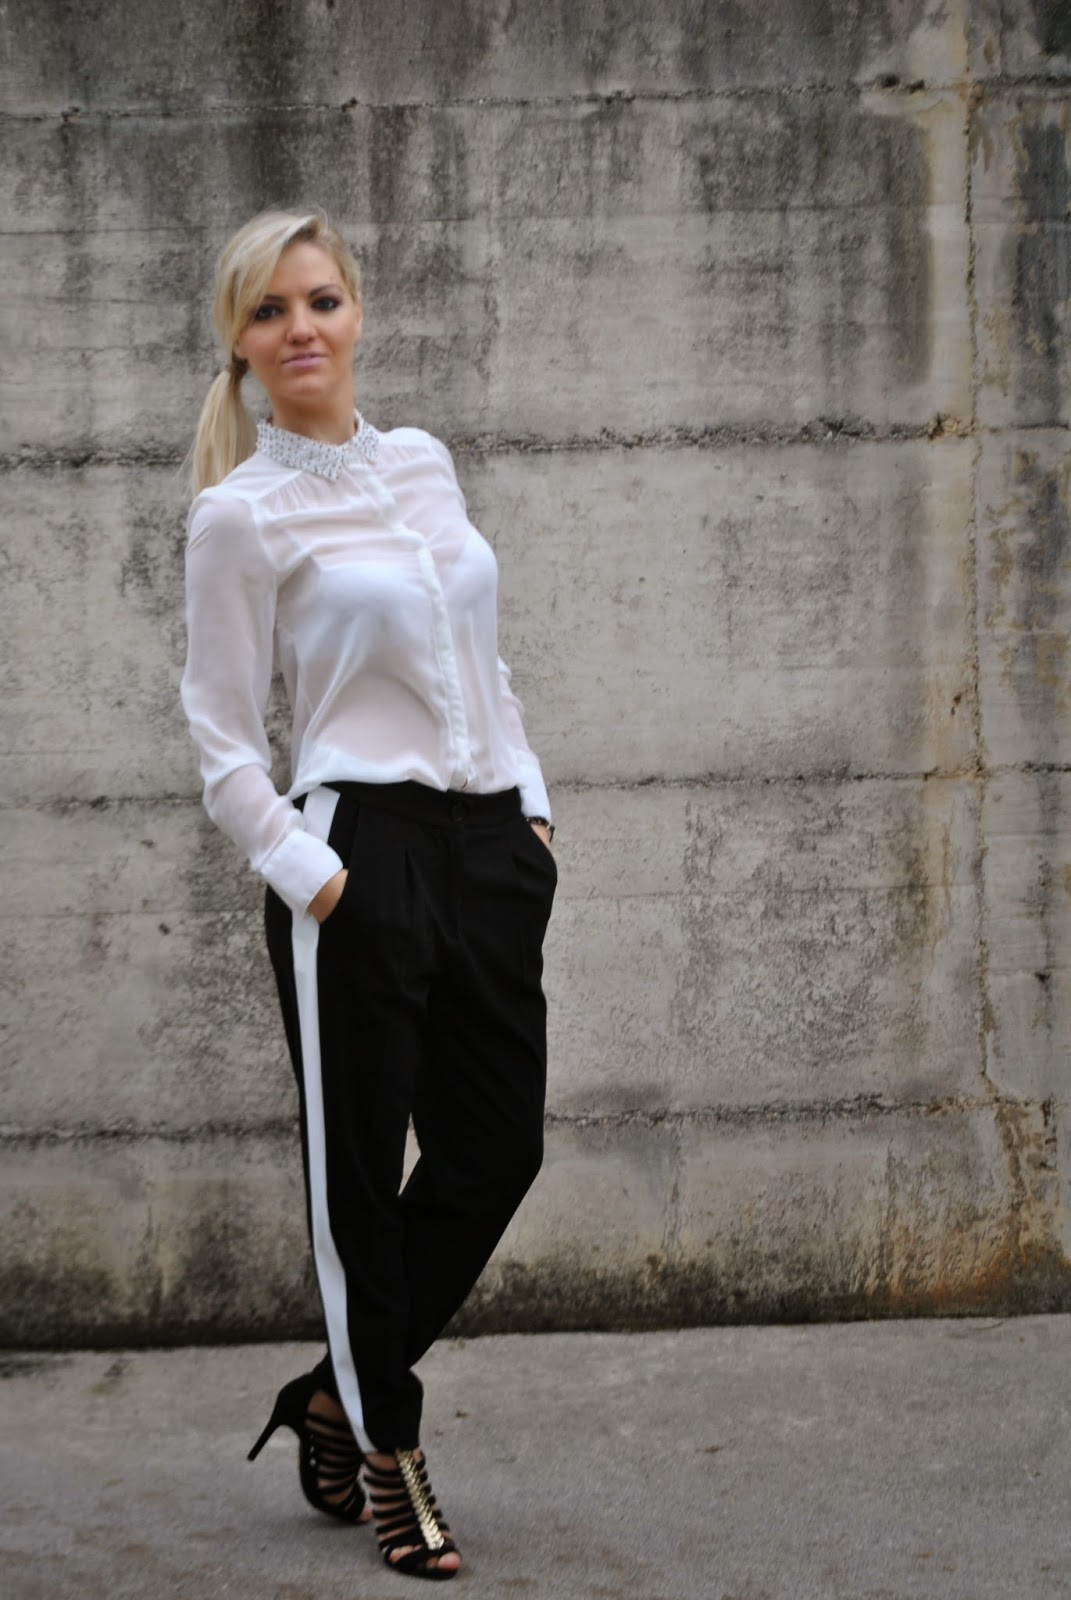 outfit camicia bianca pantaloni neri con riga bianca laterale sandali schutz bracciali mille lire abbinamento camicia bianca outfit ispirato a blake lively black trousers white shirt how to wear white shirt abbinamento camicia bianca come abbinare la camicia bianca how to wear black trousers abbinamento pantaloni neri come abbinare i pantaloni neri schutz sandals outfit invernali eleganti outfit per le feste di natale outfit di natale outfit novembre 2014 outfit eleganti natale november outfits outfit for christmas elegant winter outfits mille lire bracelets bracciali mille lire  autumnal outfits  outfit autunnali outfit mariafelicia magno mariafelicia magno fashion blogger italian girls ragazze italiane fahsion blogger bionde ragazze bionde blonde girls fashion bloggers italy